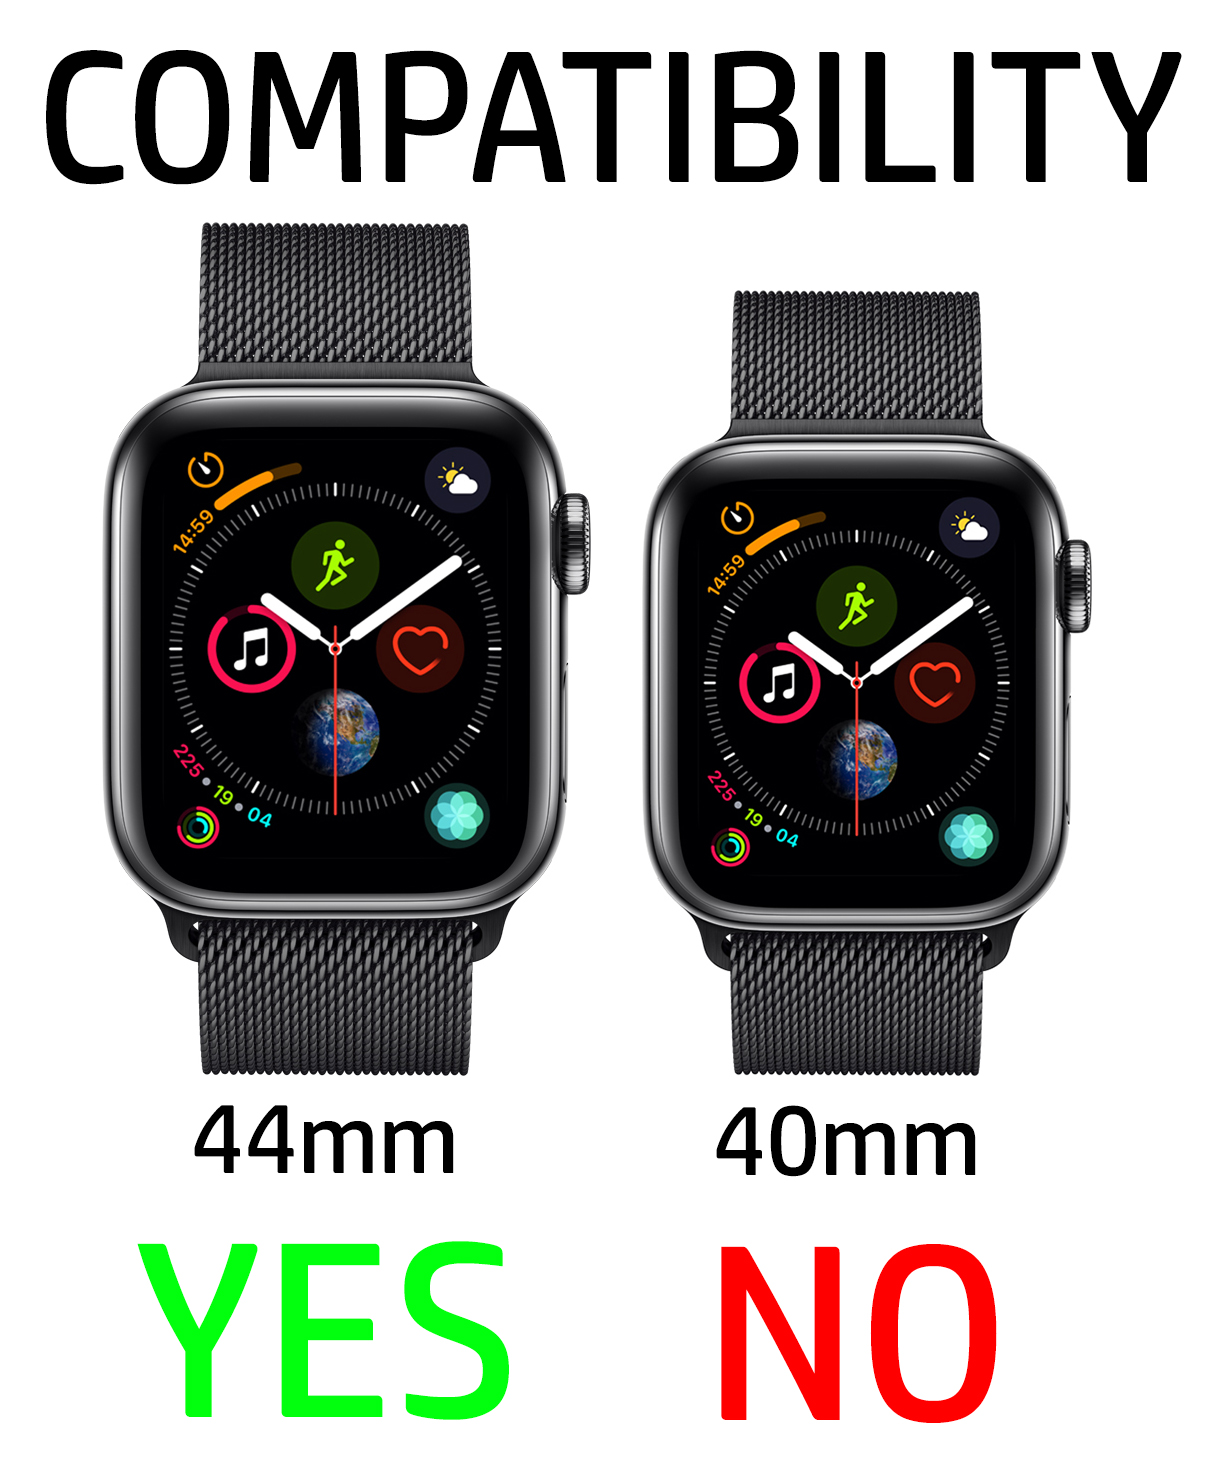 New-TPU-Case-Flexible-Rubber-Trim-Cover-for-Apple-Watch-Series-4-44mm miniatuur 9